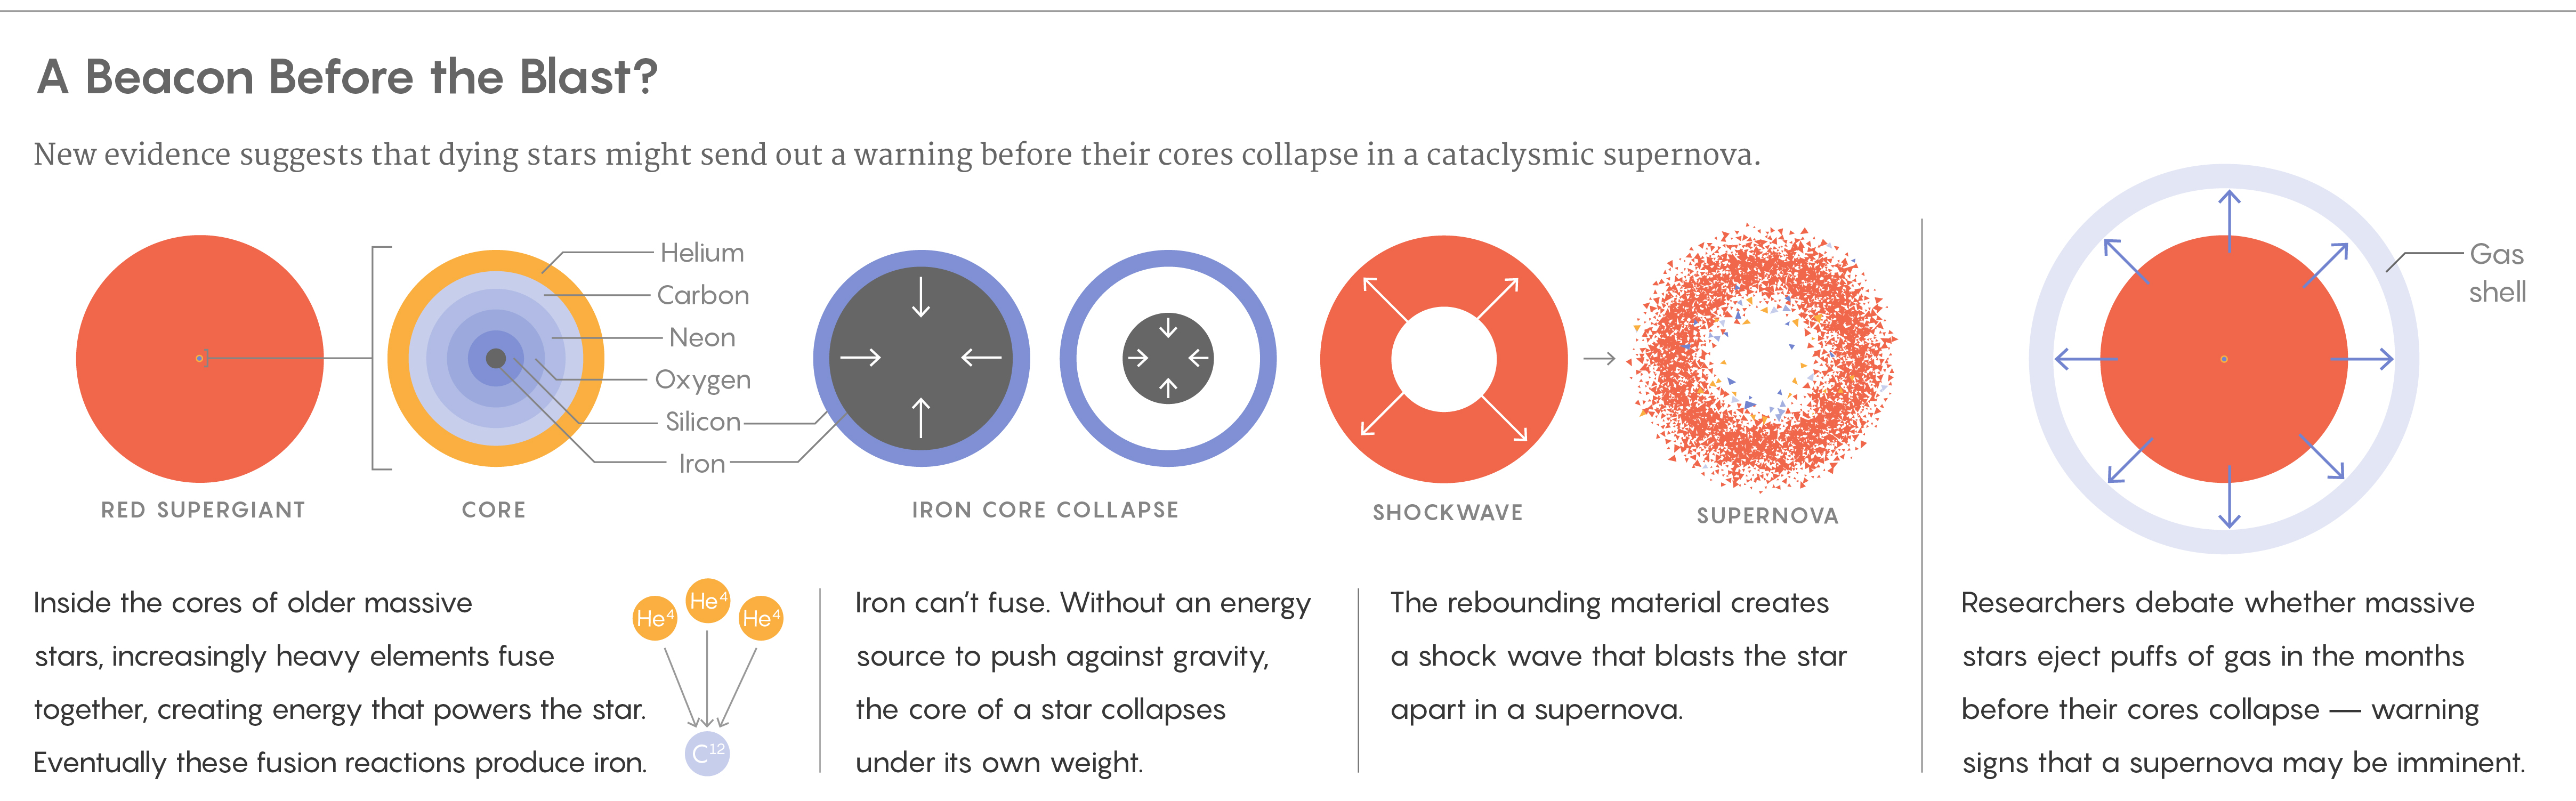 Dying stars may send out a warning before their cores collapse into a supernova